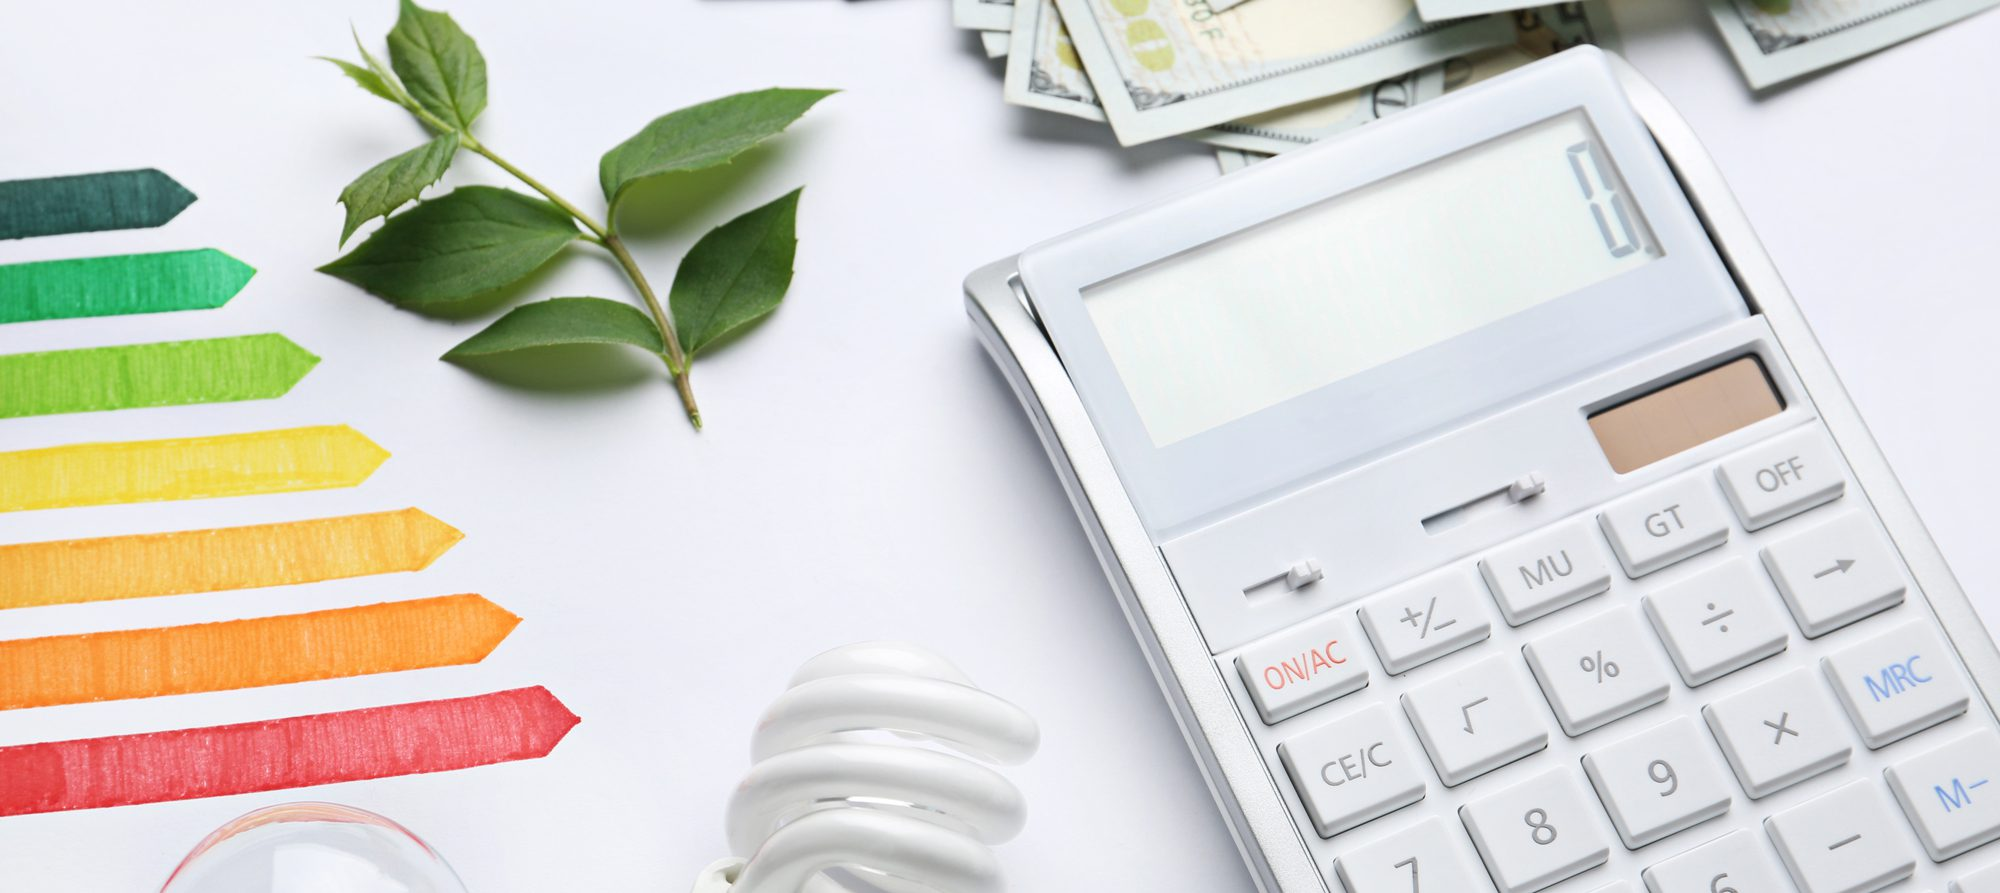 8 ways to lower your electric bill